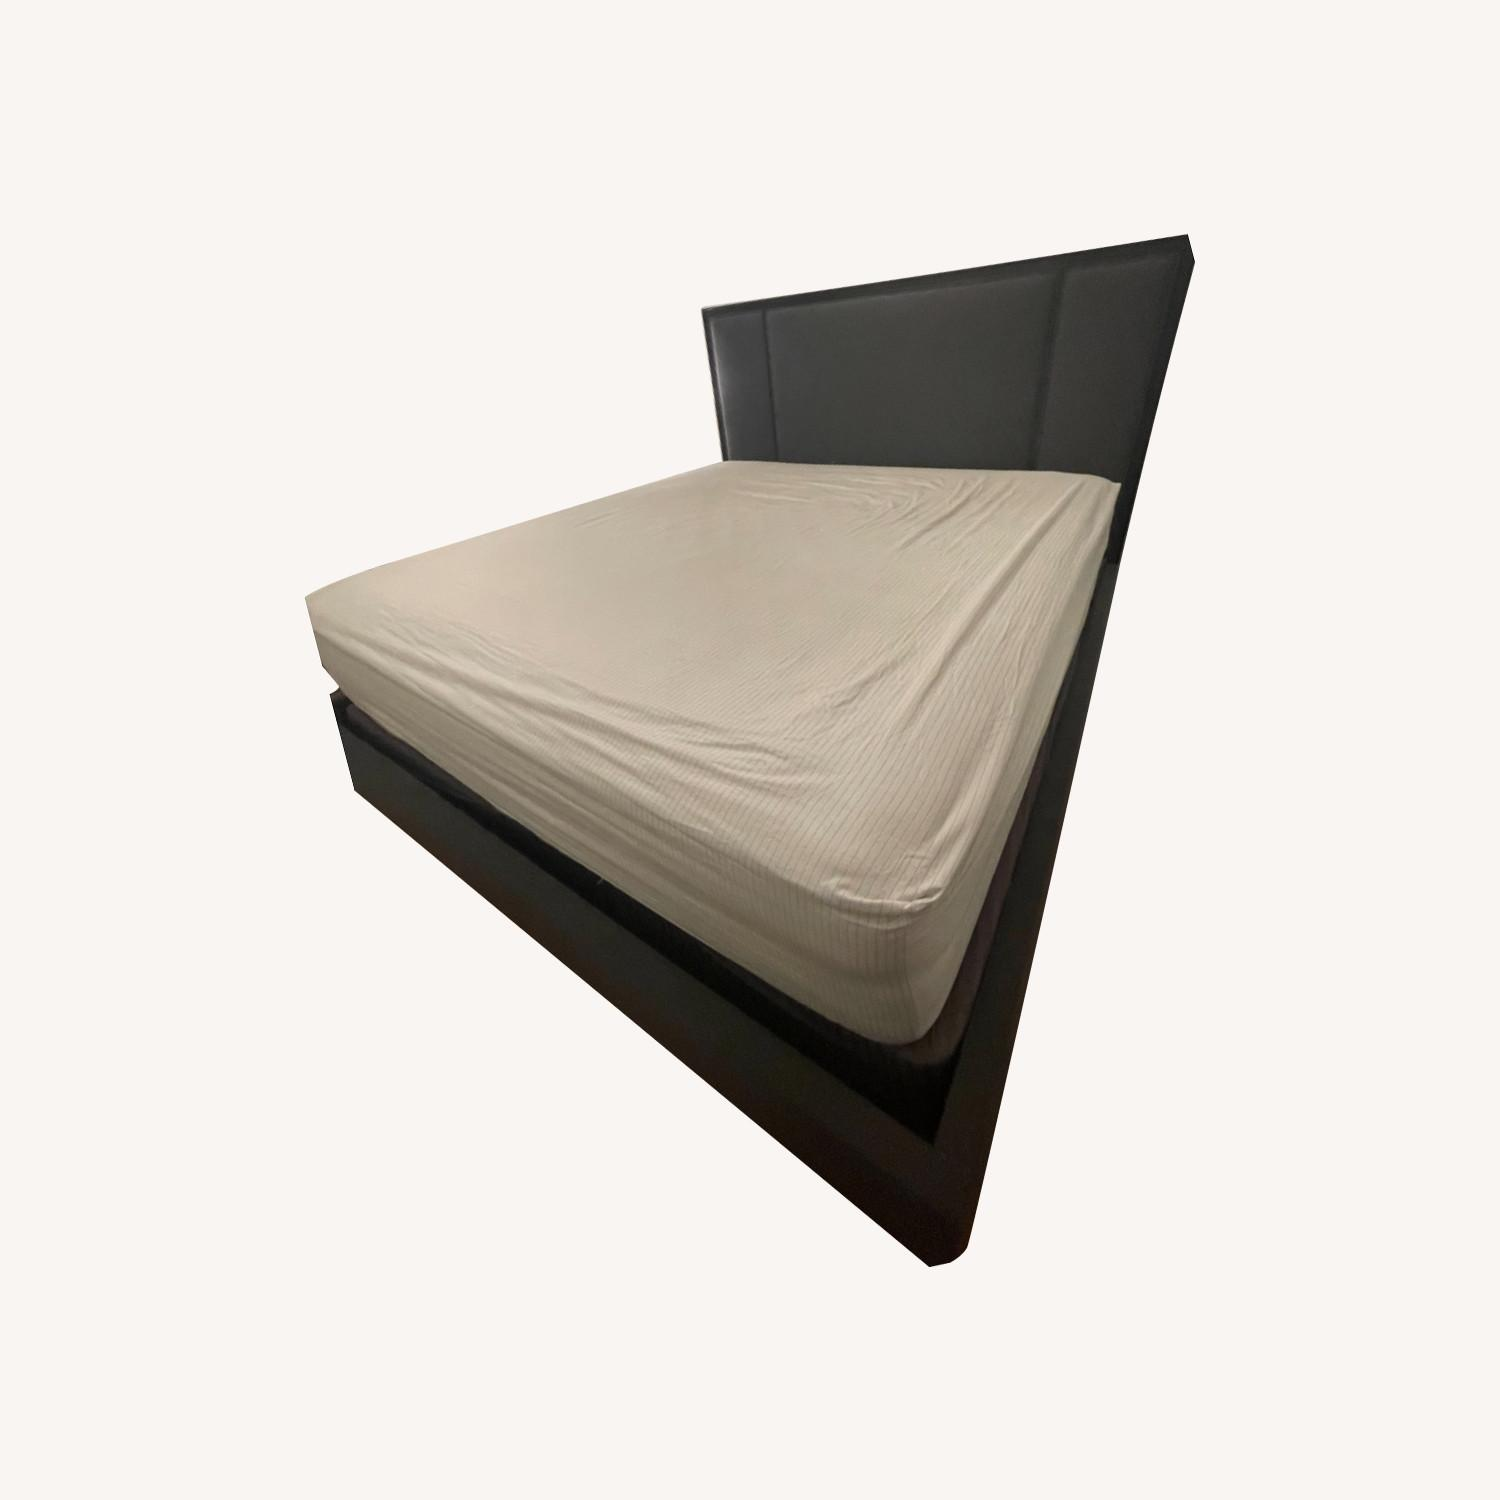 Custom Kravet King Bed - image-5